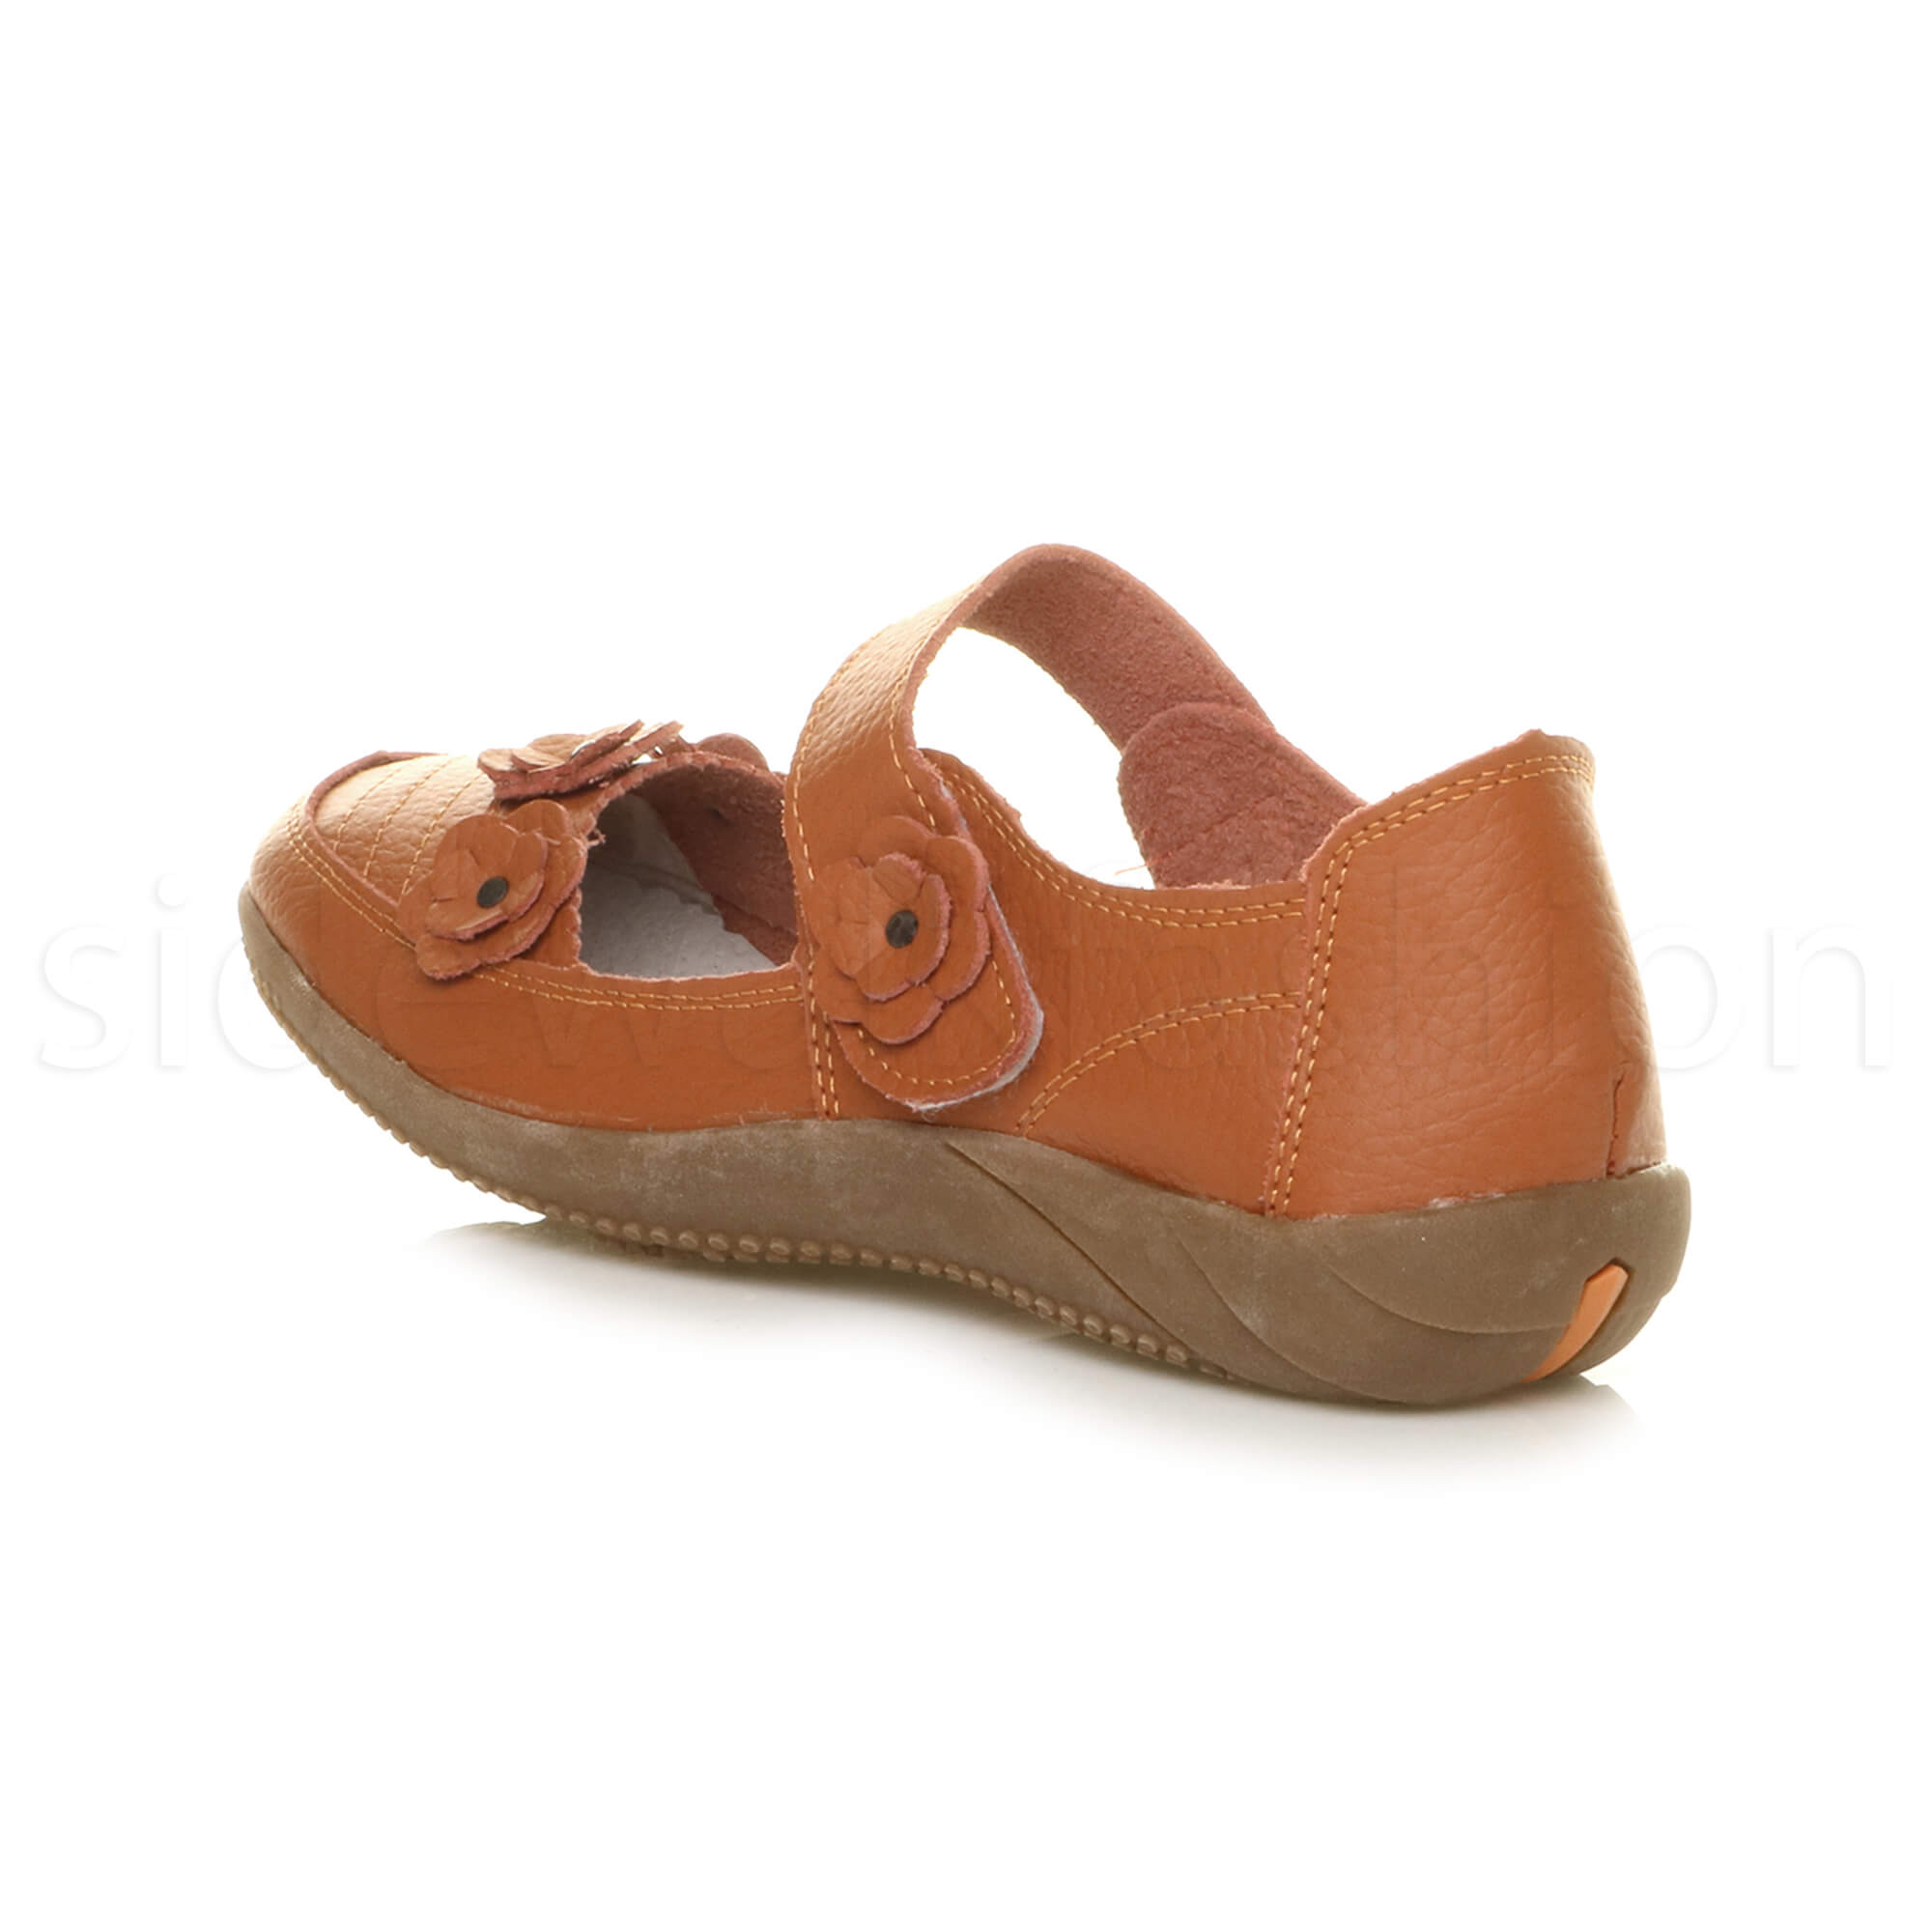 WOMENS-LADIES-LEATHER-COMFORT-WALKING-CASUAL-SANDALS-MARY-JANE-STRAP-SHOES-SIZE